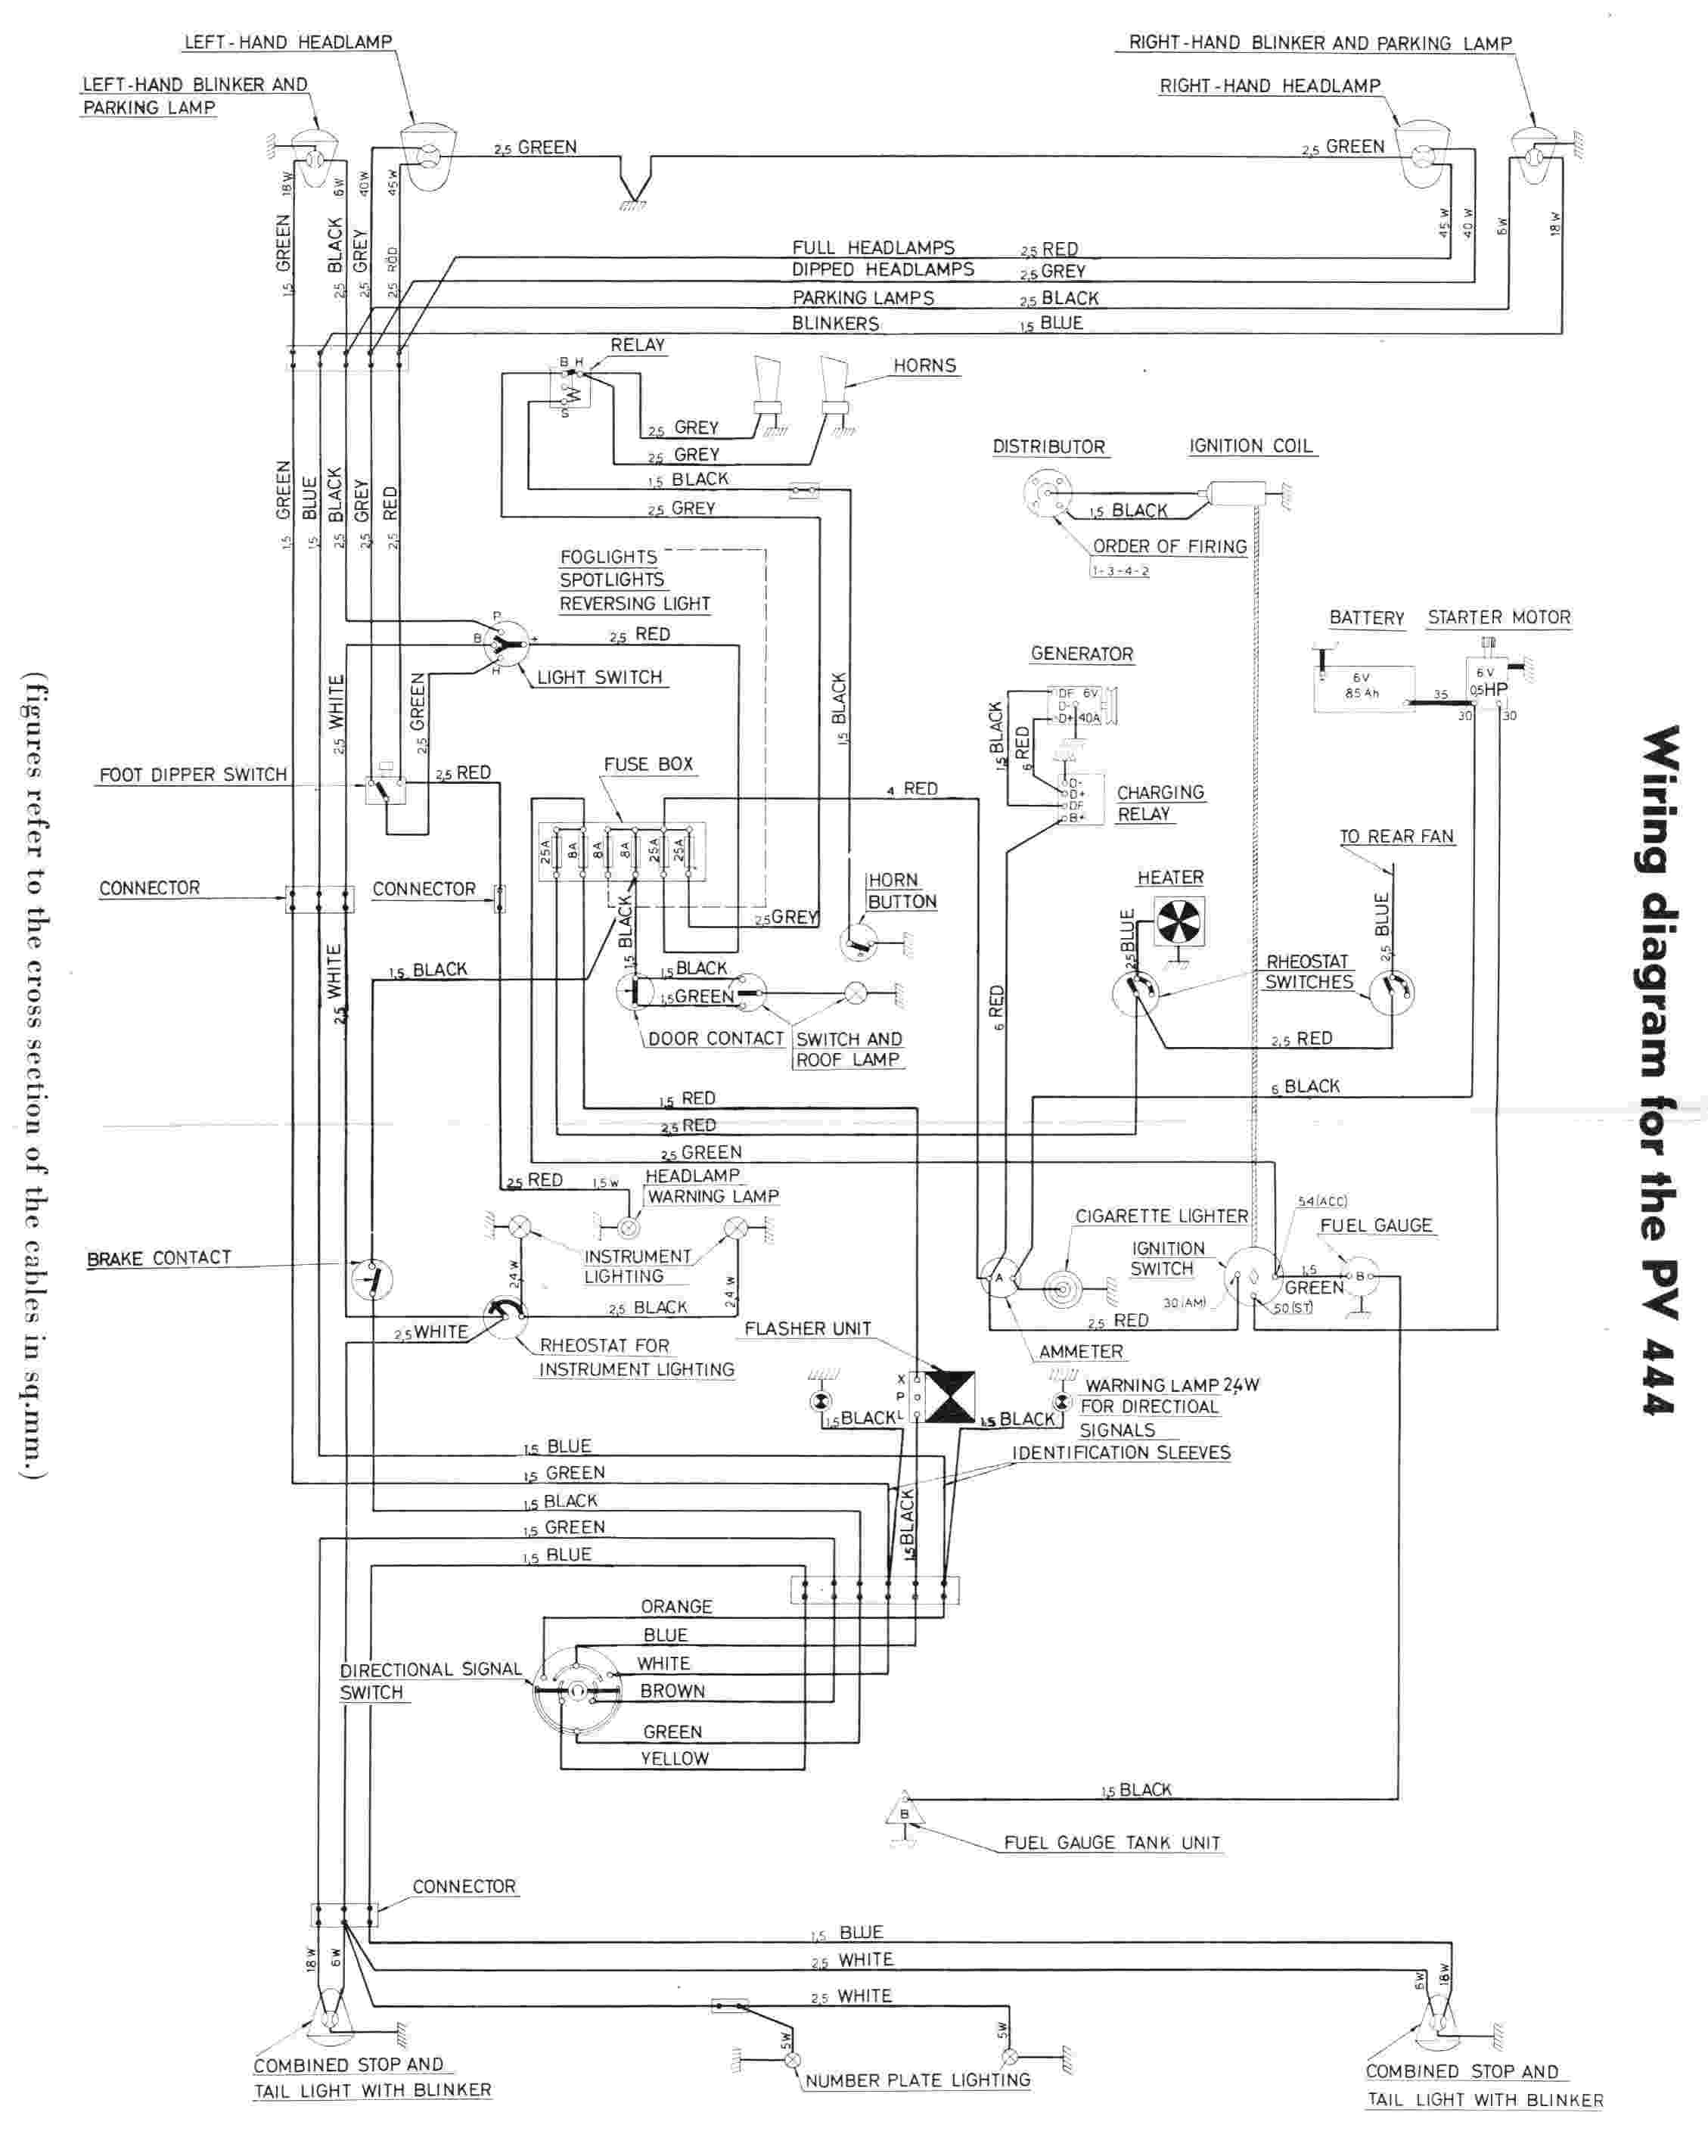 medium resolution of volvo 780 wiring diagram wiring diagram todays2012 volvo truck wiring diagrams free box wiring diagram volvo